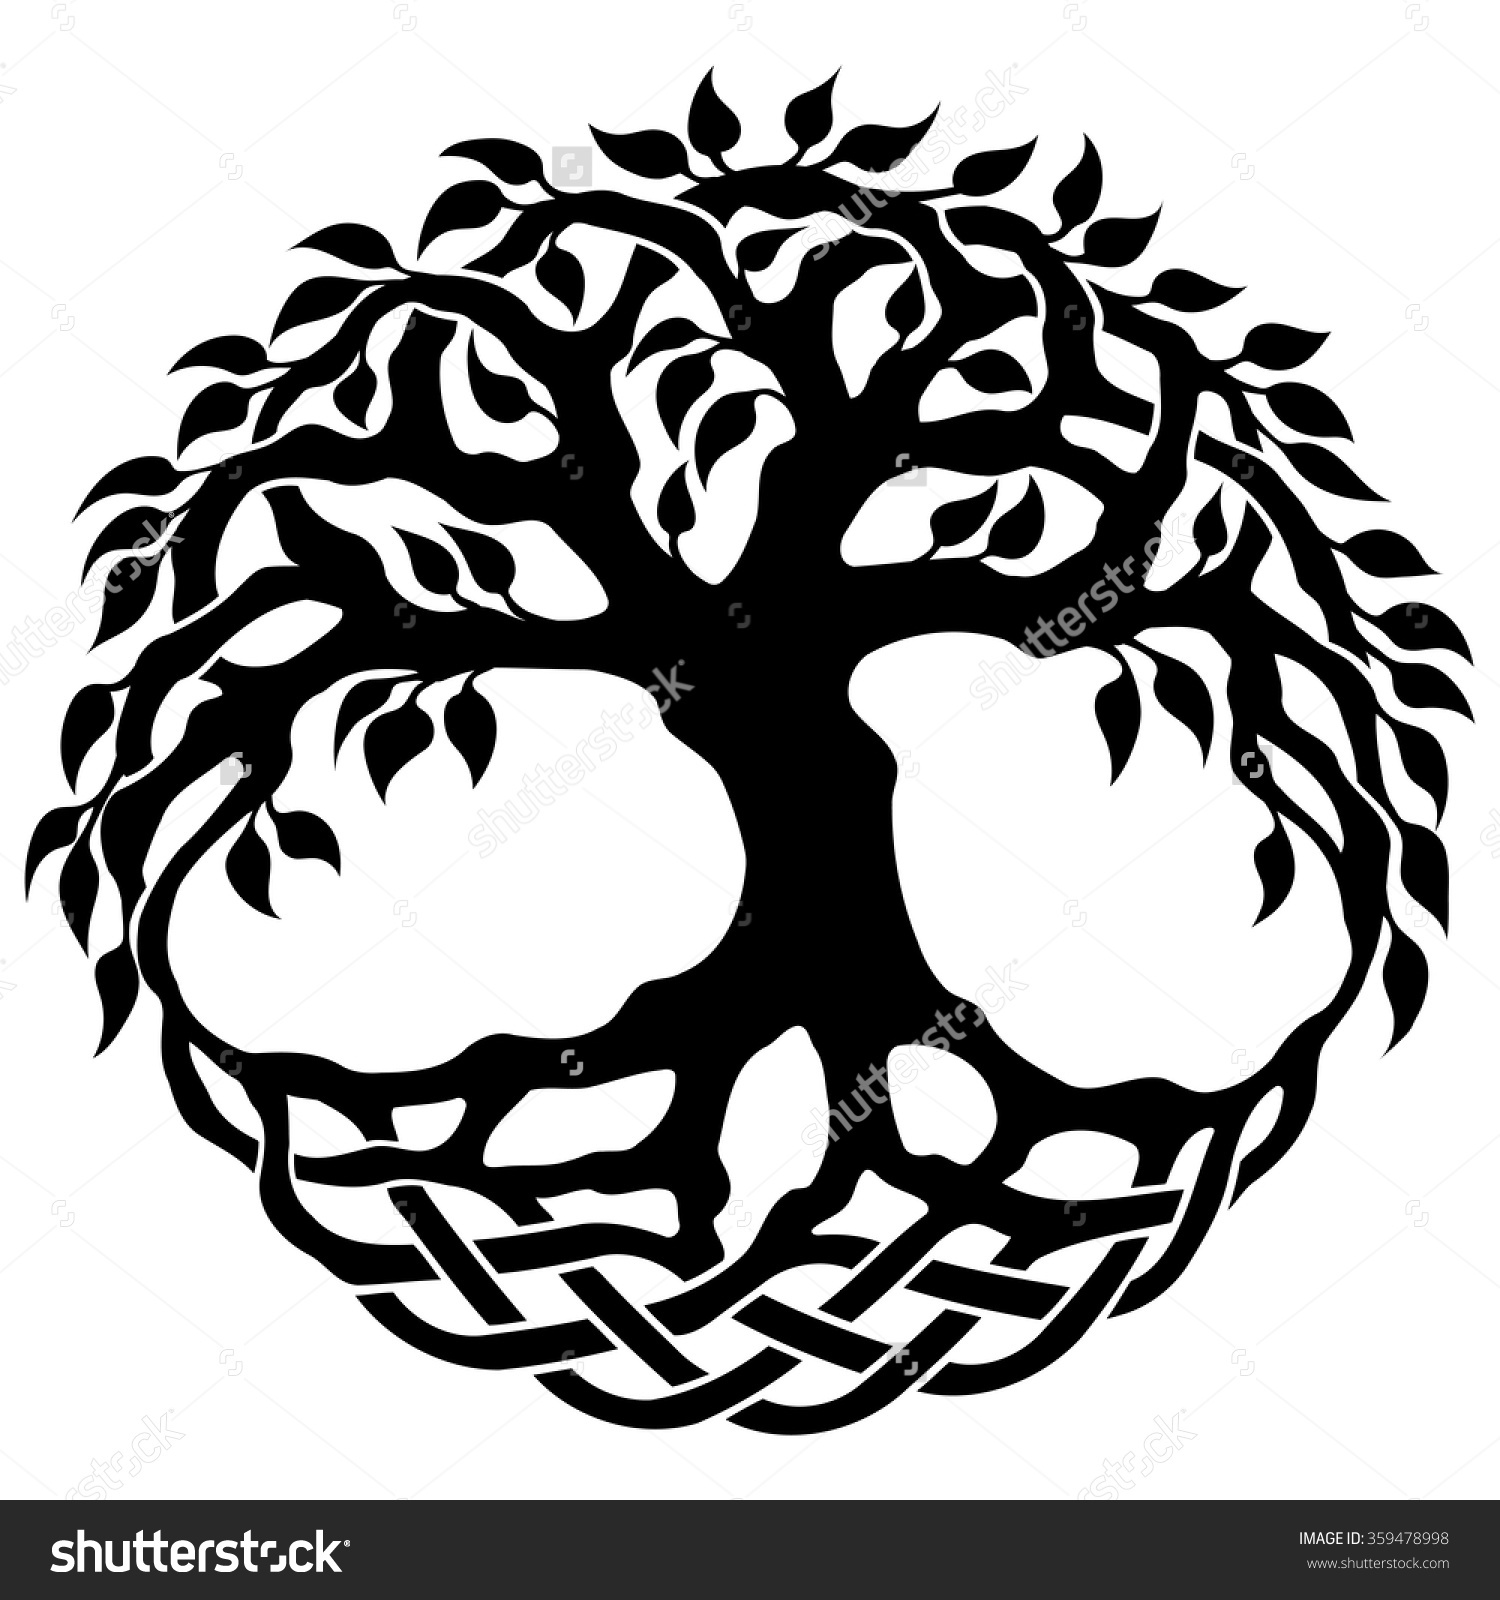 Giant Tree Wall Sticker Free Celtic Tree Of Life Clipart Clipground